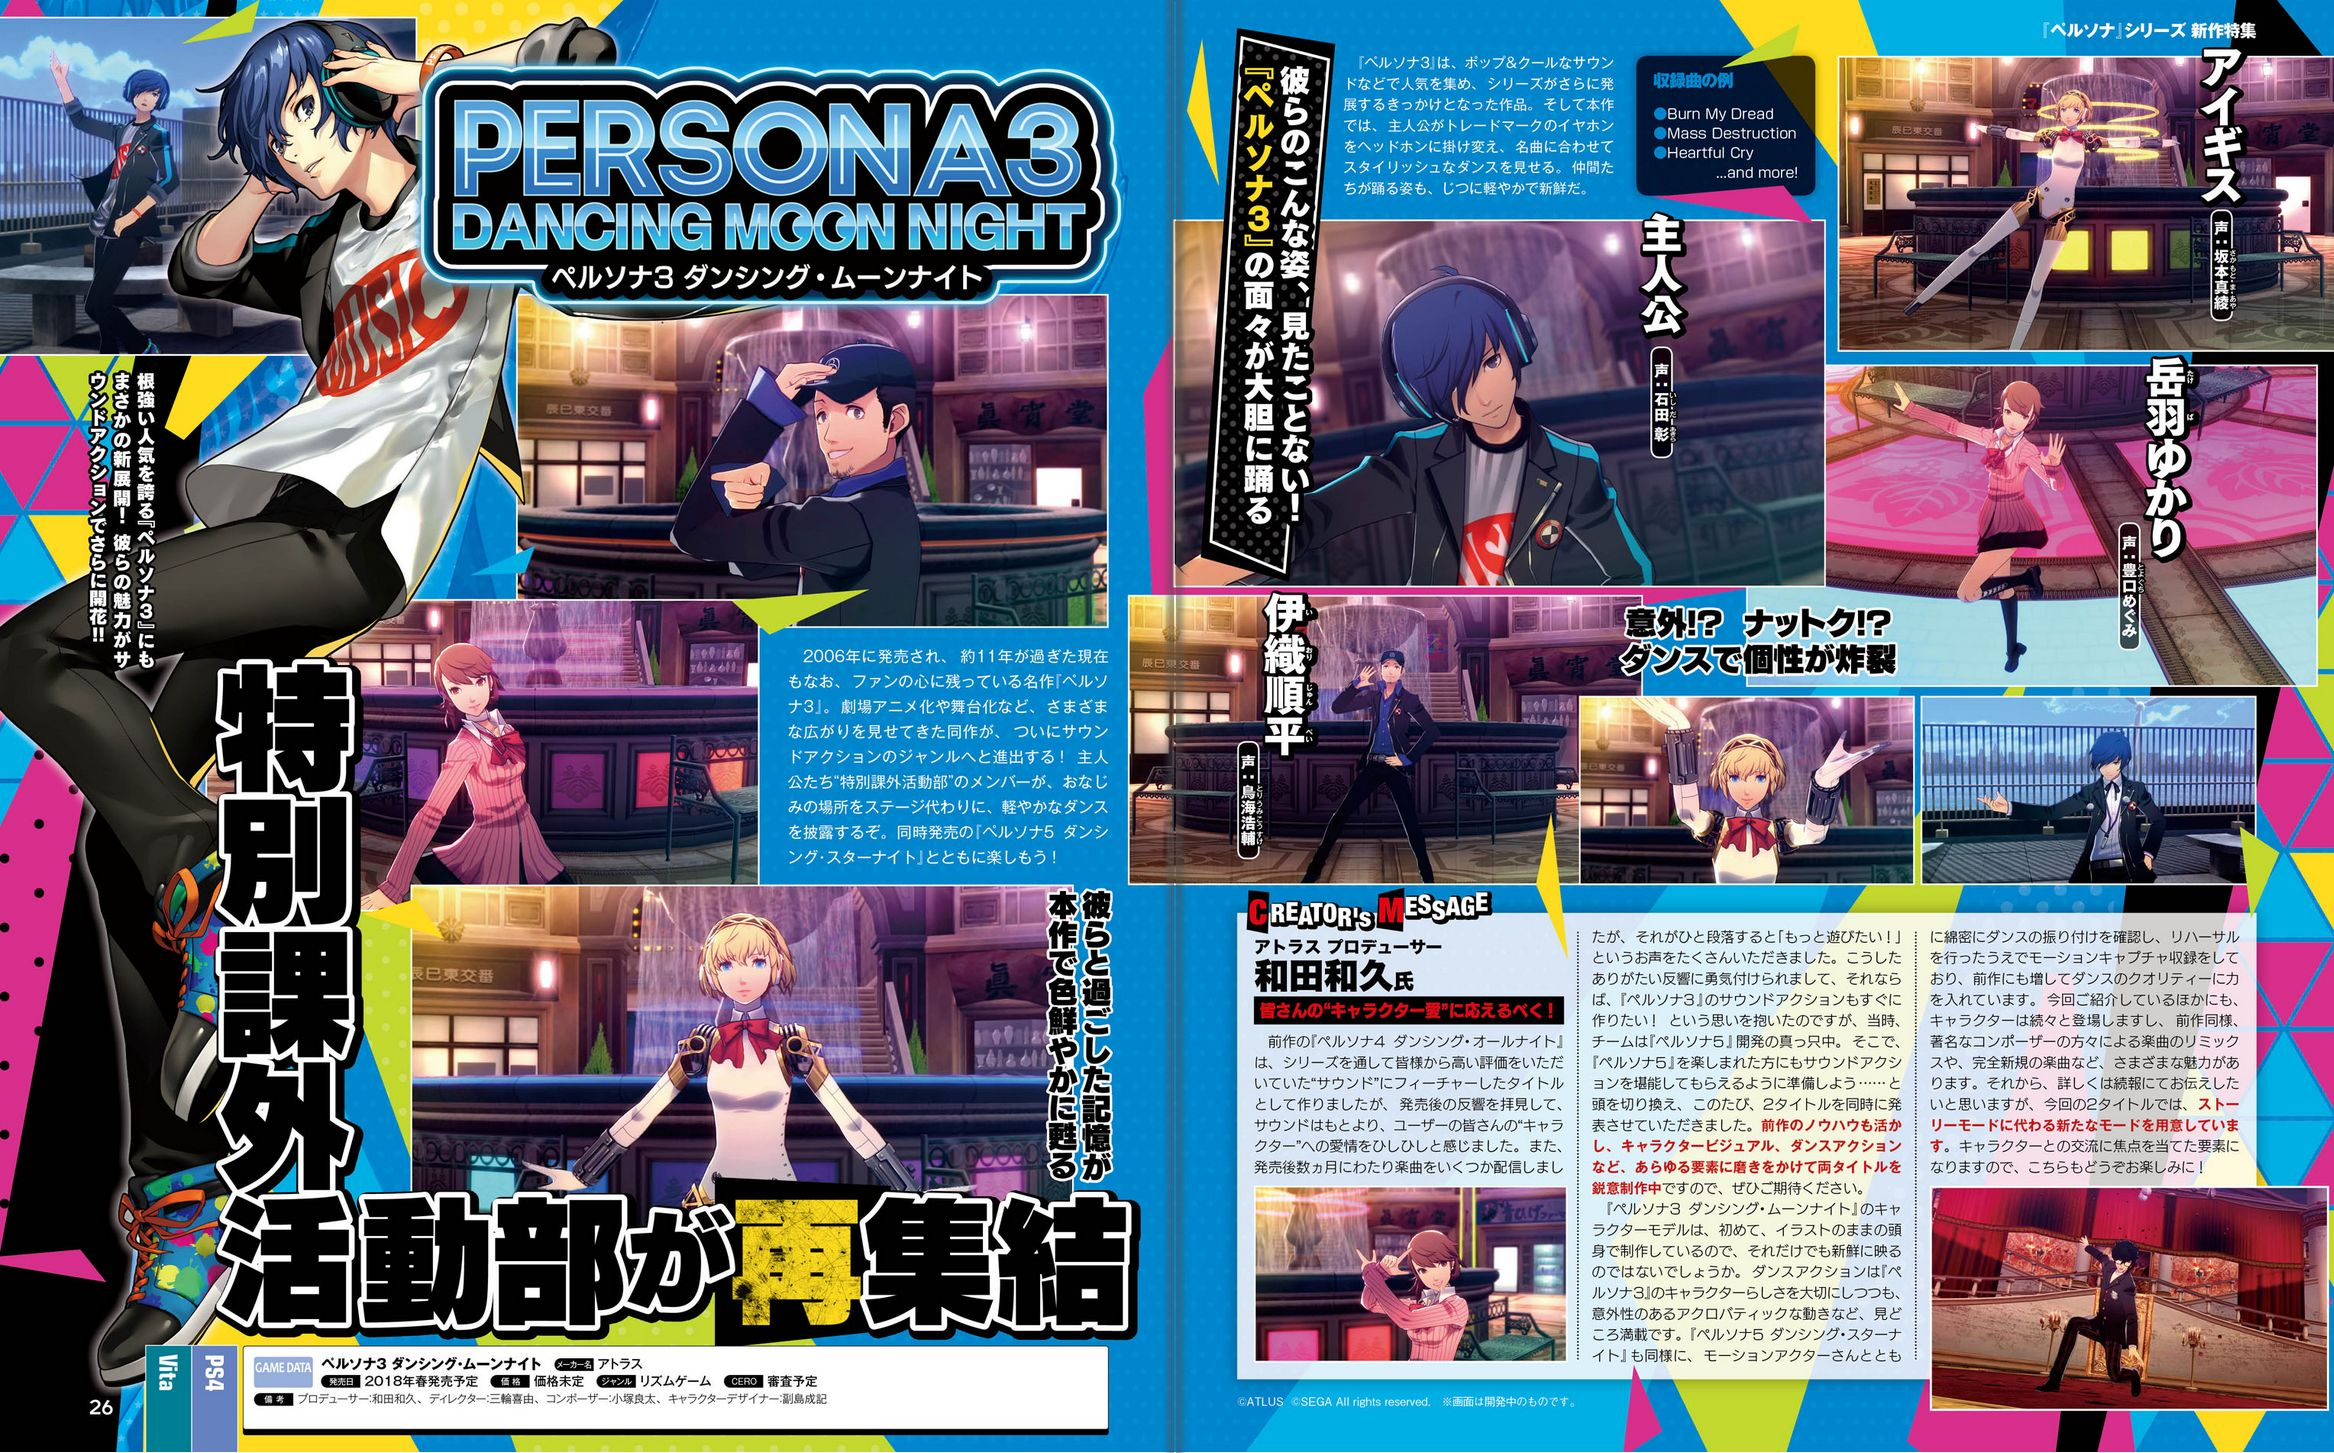 Famitsu P3D and P5D Scan 02